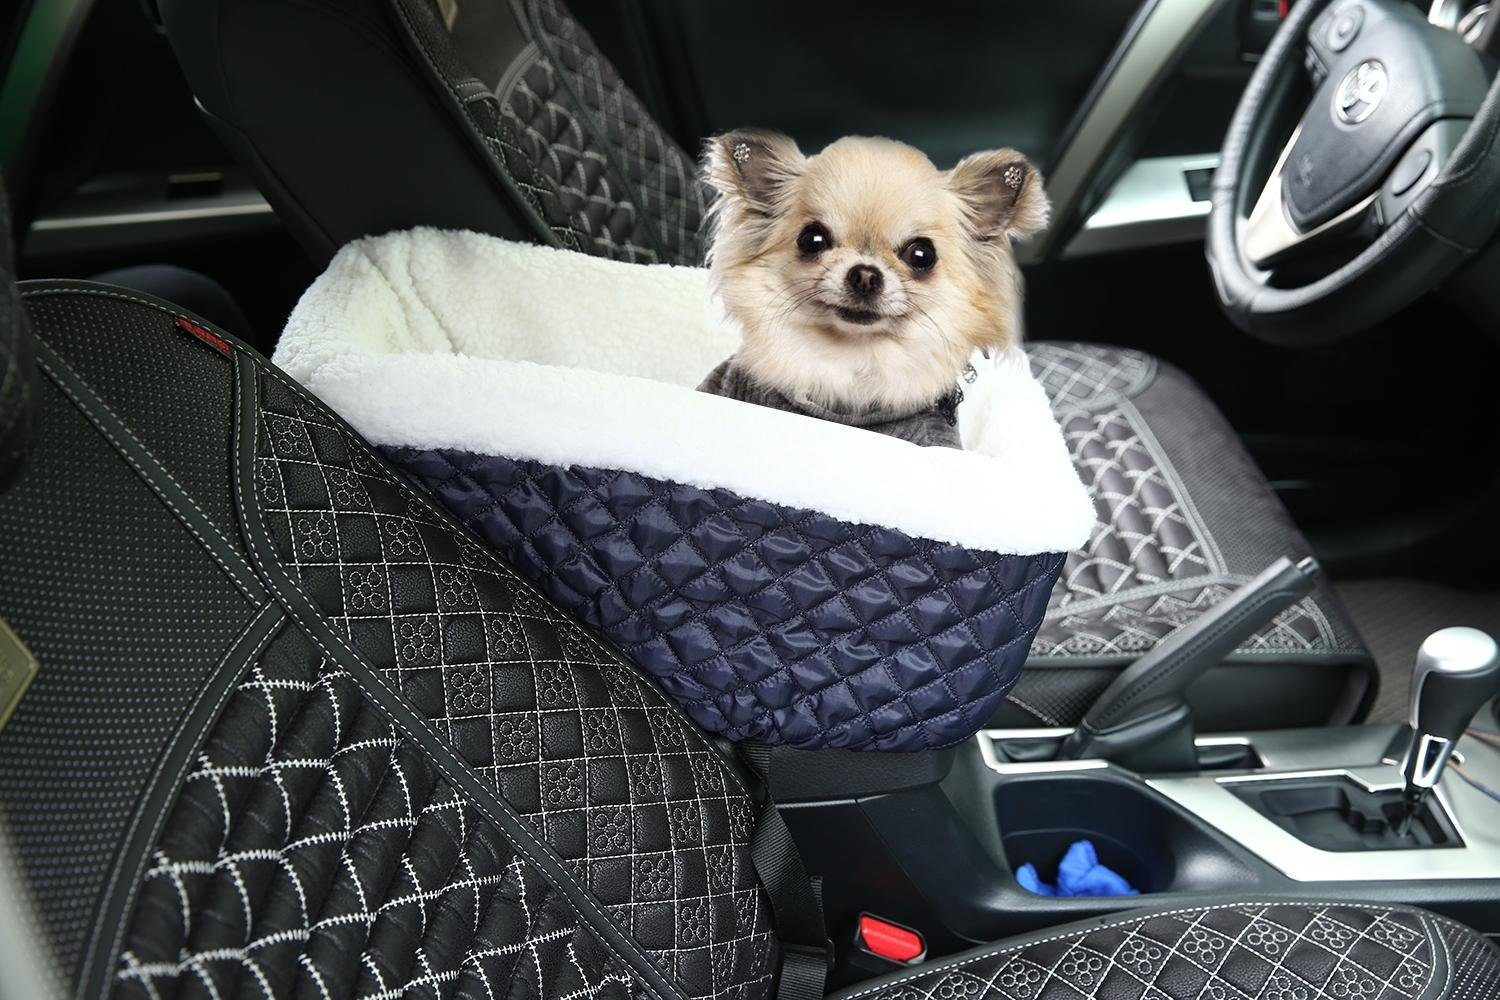 Meago Pet Dog Cat Console Car Seat Carrier With Safety Belt Booster For Small Pets